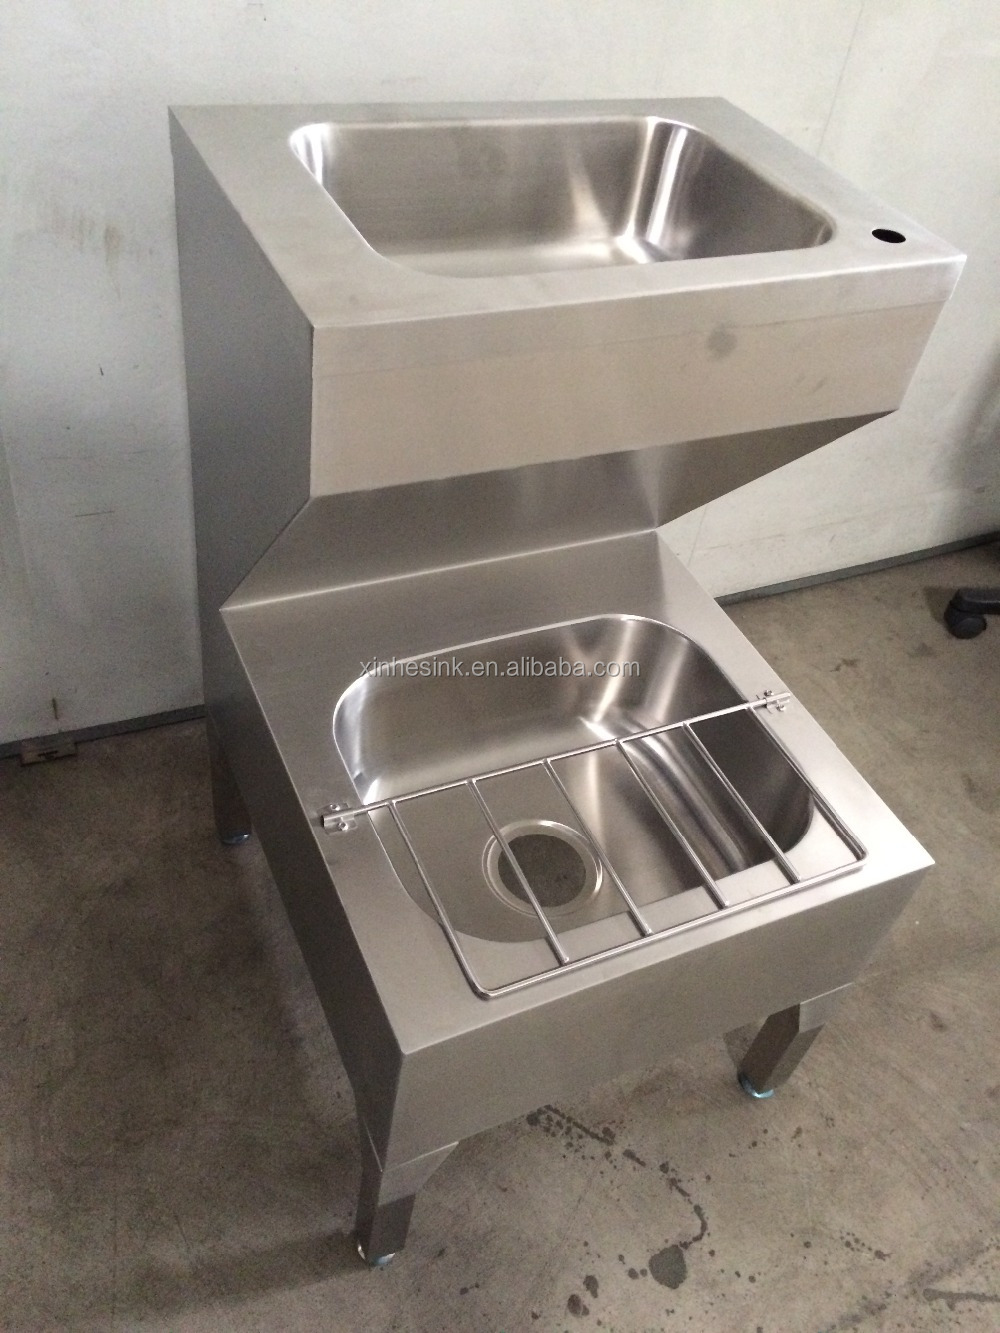 Economy Stainless Steel Floor Mount Double Bowls Hand